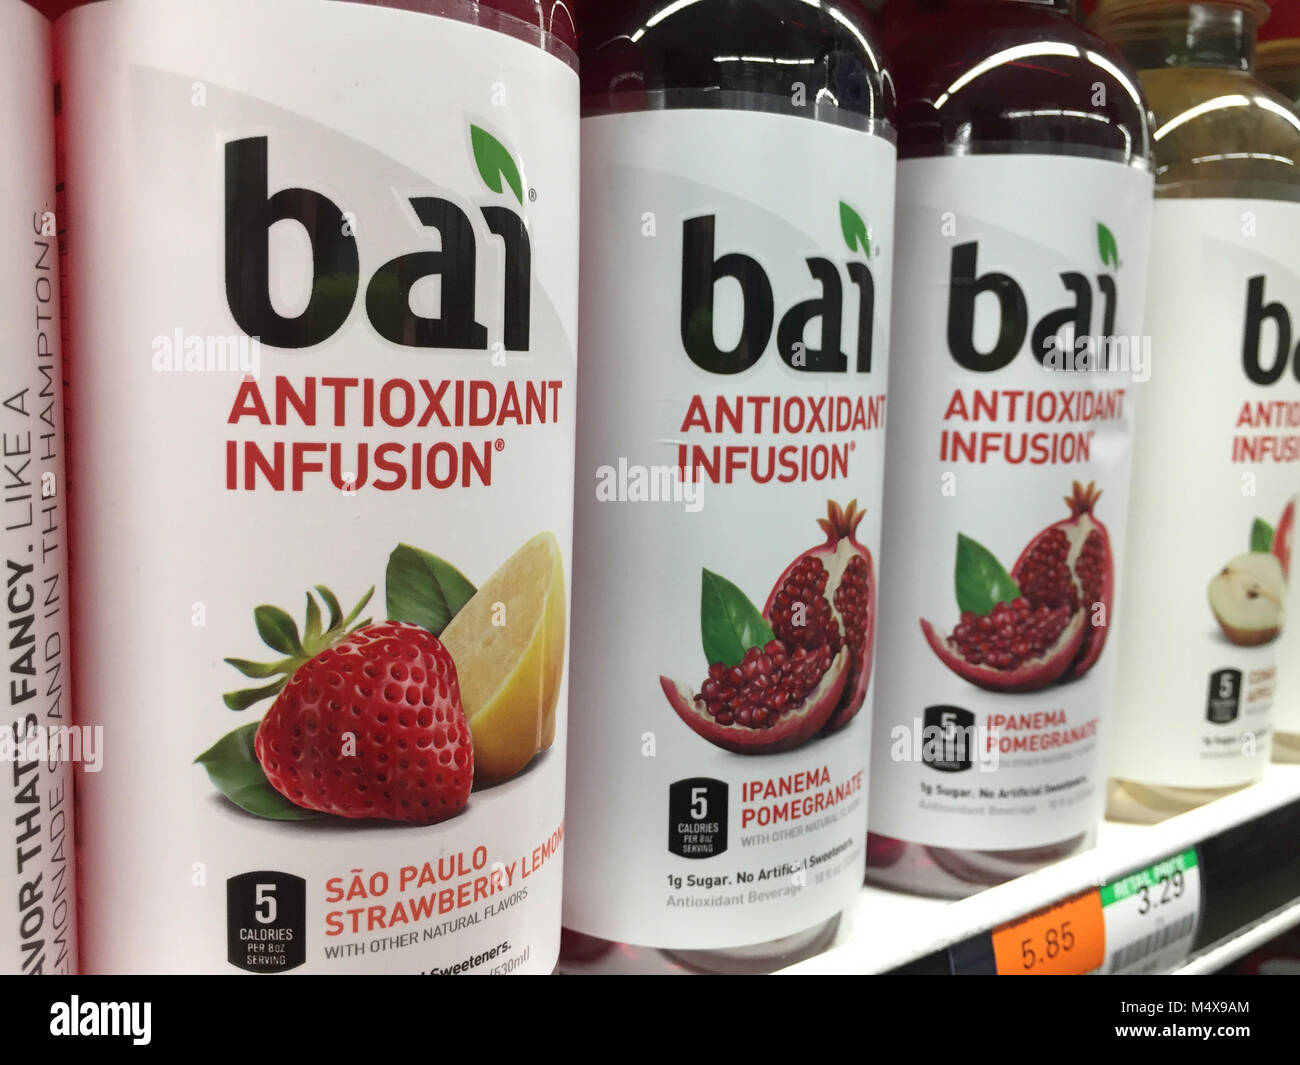 Bai Antioxidant Infusion Drink at D'Agostino Grocery Store in New York City, United States - Stock Image